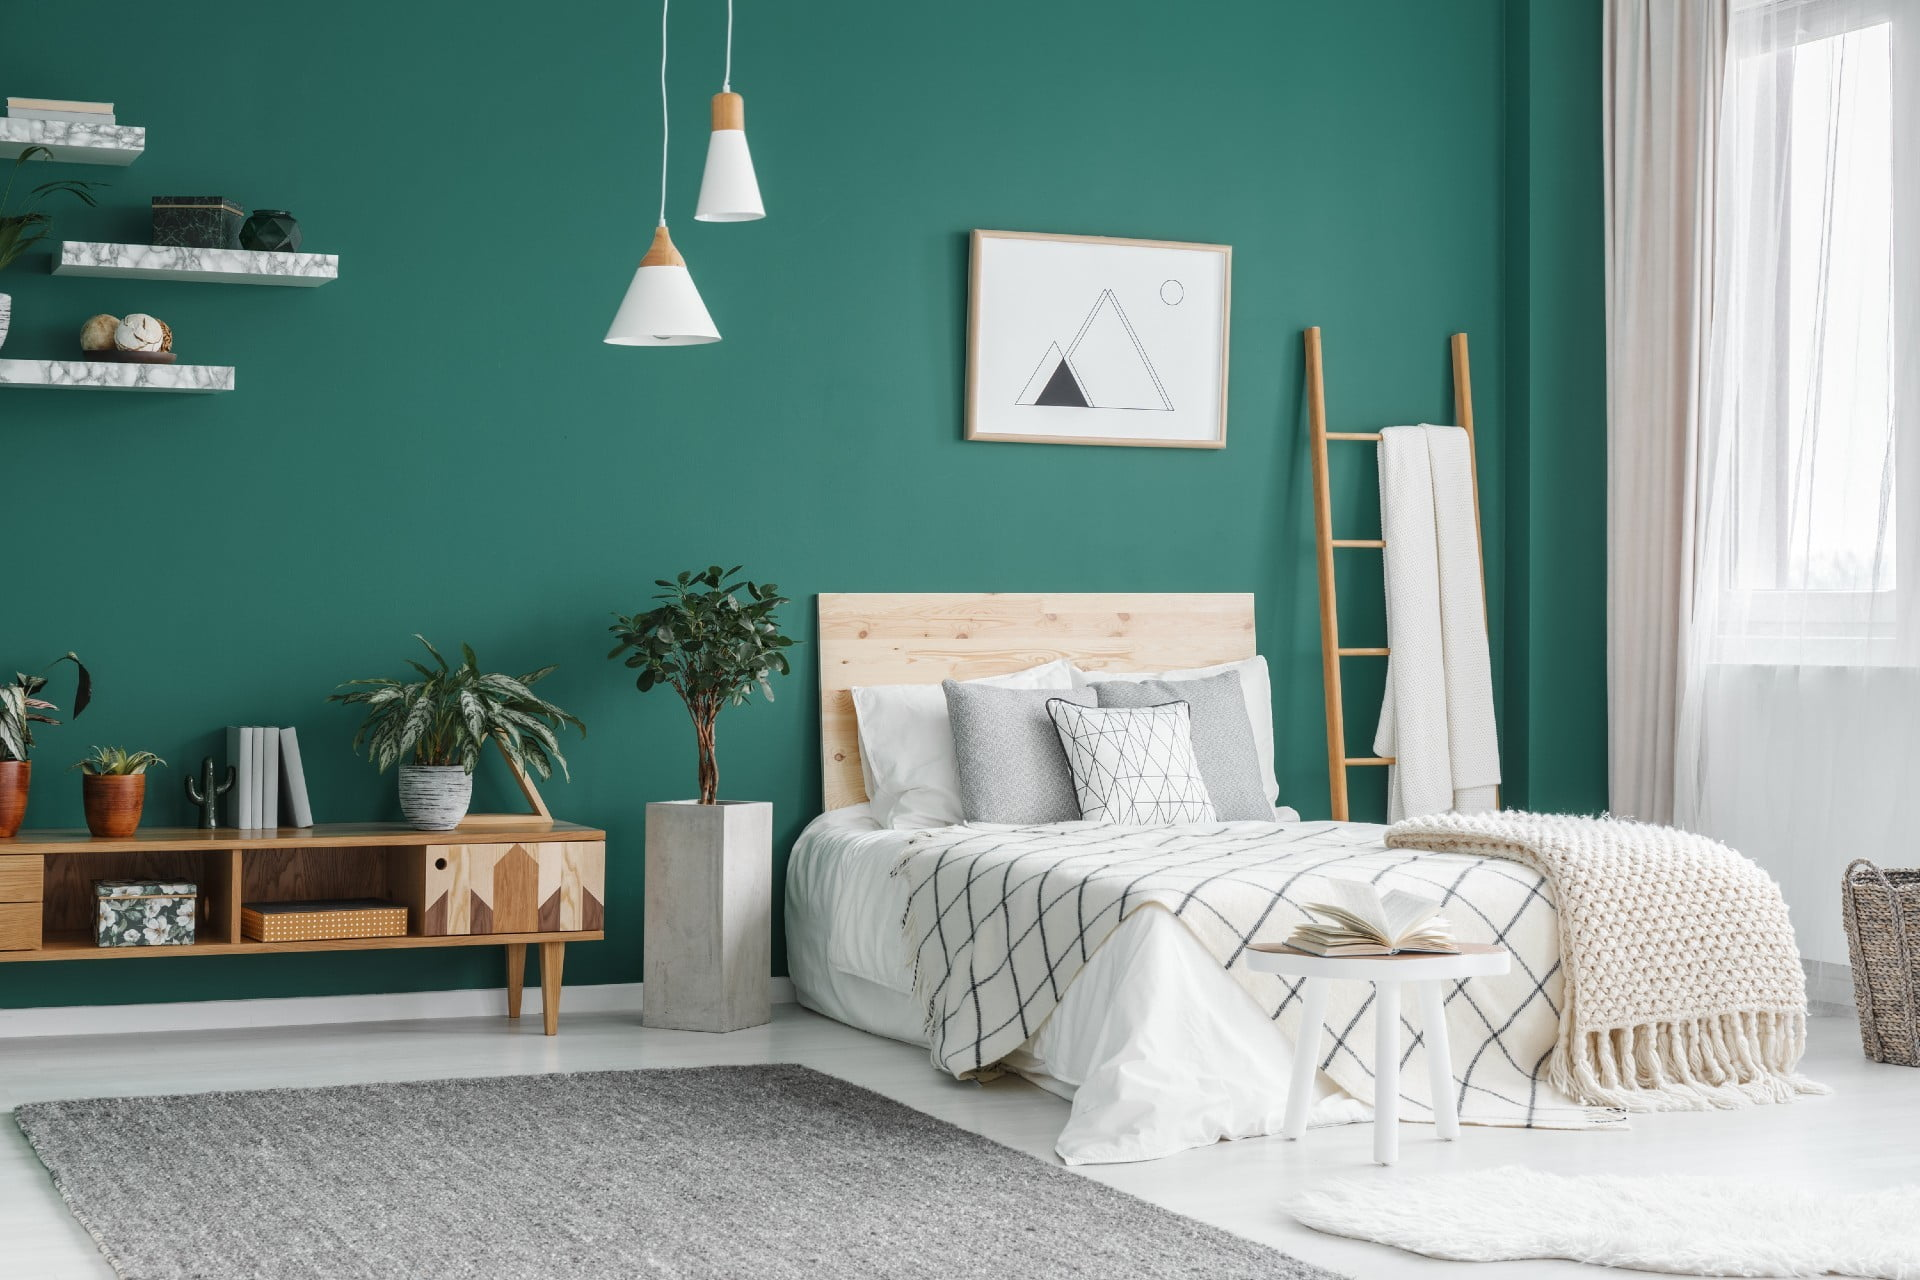 green bedroom with headboard